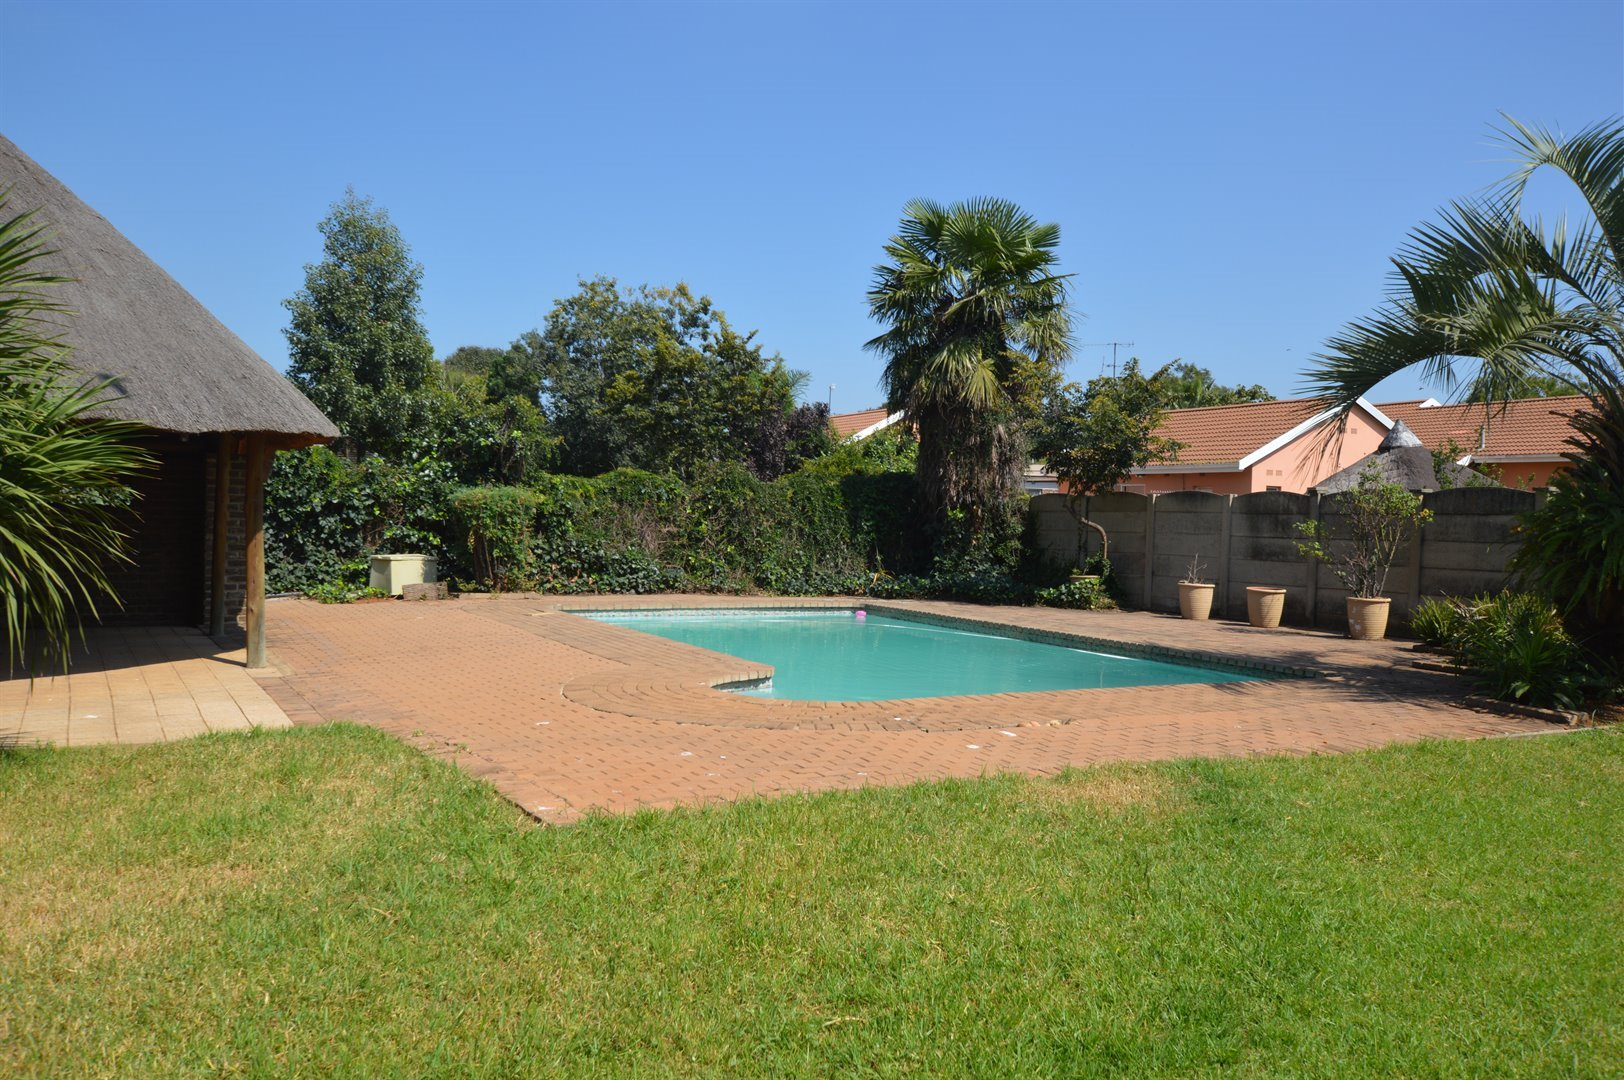 Vanderbijlpark Se 2 property for sale. Ref No: 13623209. Picture no 32